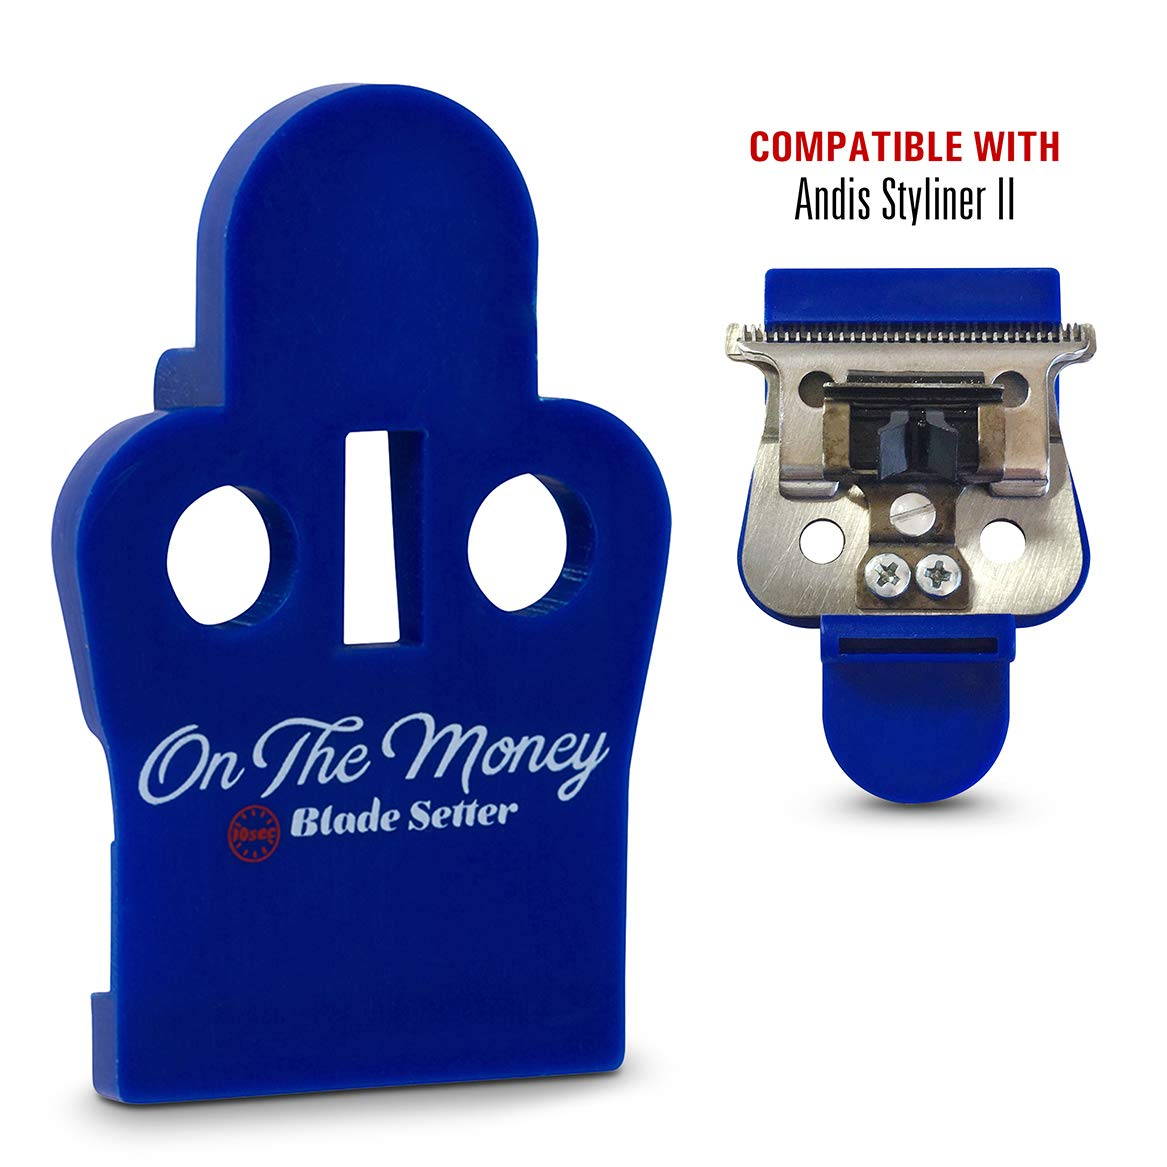 ON THE MONEY 10 Sec Blade Setter BLUE (Andis Styliner II) - The World's Fastest & Easiest way to perfectly adjust and set Trimmer Blades The Rich Barber